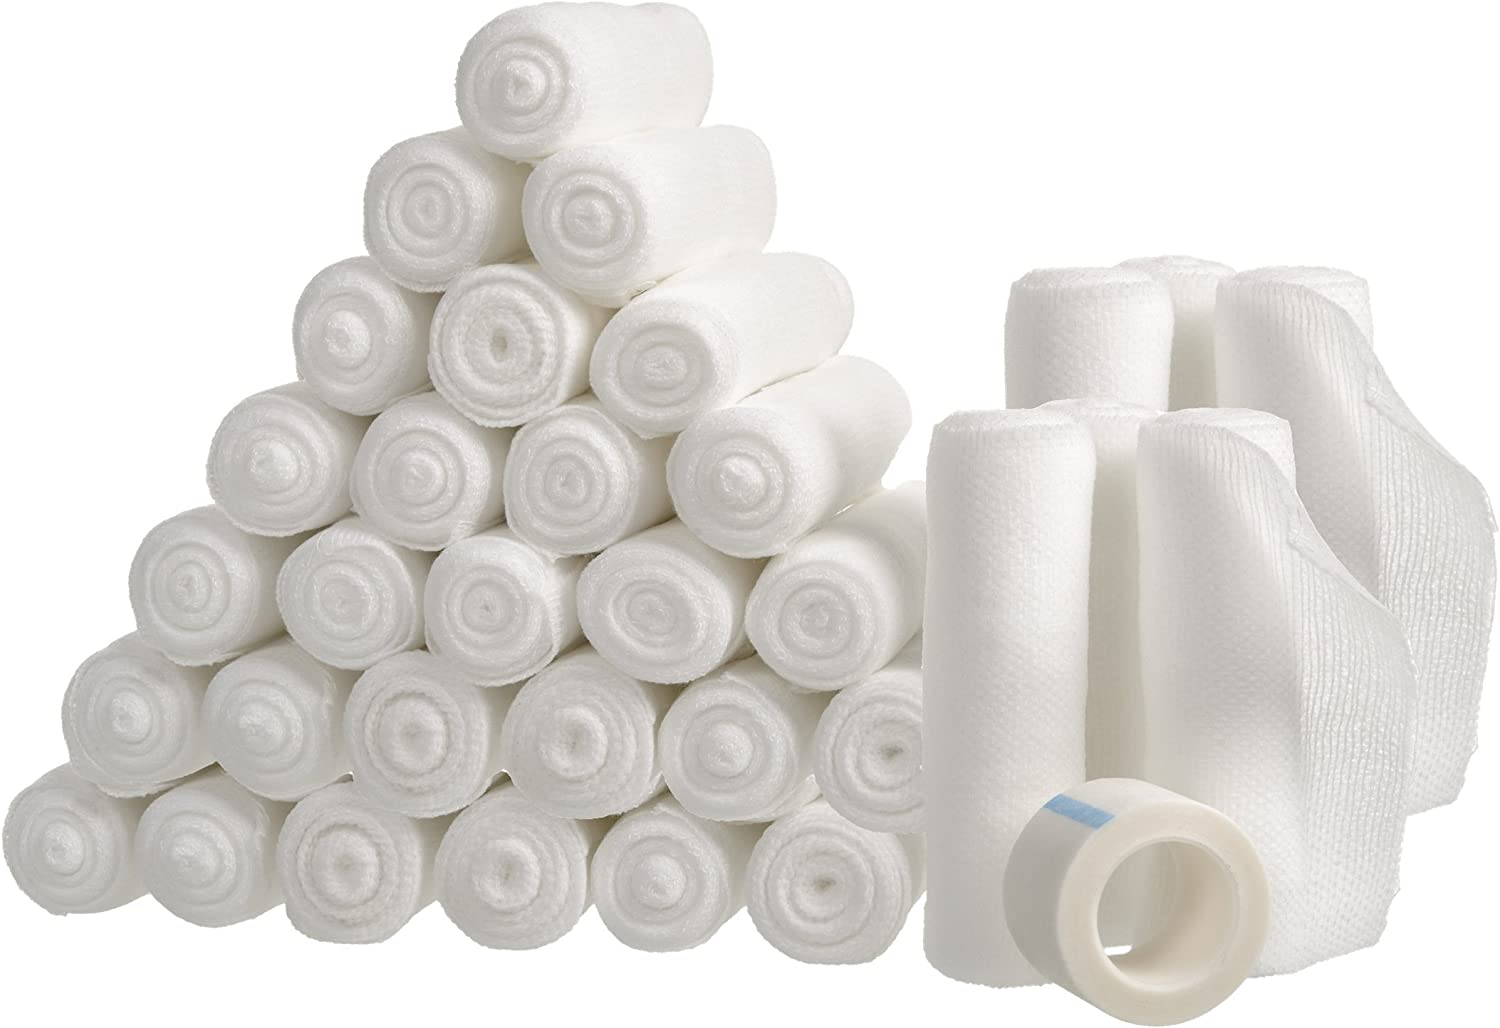 Gauze Bandage Rolls with Tape 36-Pack, Stretch Bandage Roll, 4 x 4 Yards Stretched, Breathable White Gauze Bandages, Bulk Gauze Rolls for Home, Gym & Office Use, Absorbent Bandage Rolls: Health & Personal Care